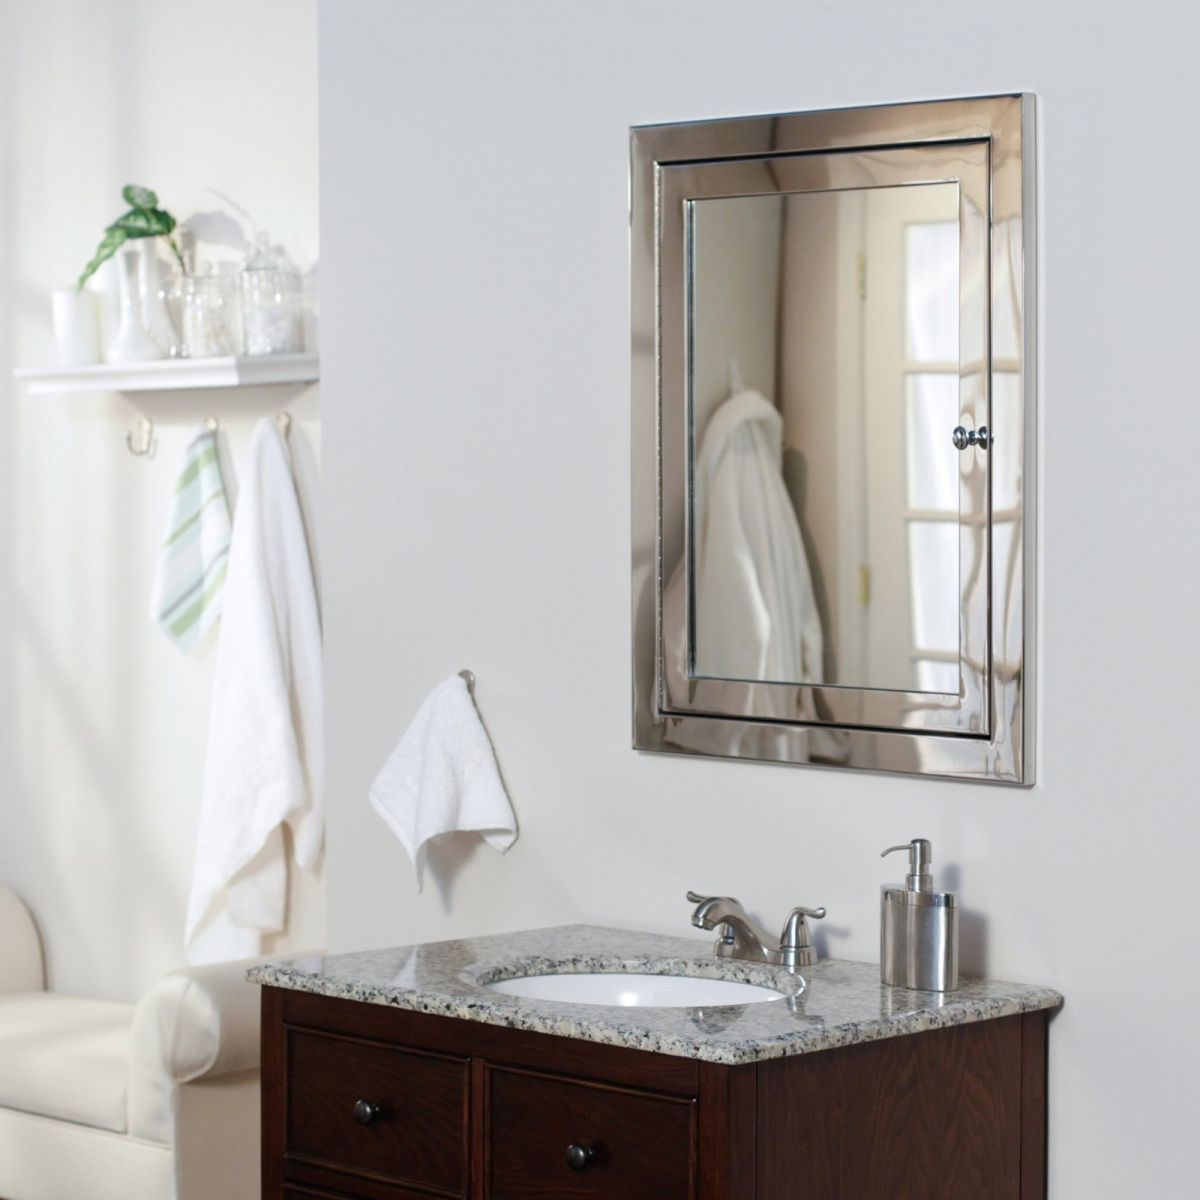 Bathroom Medicine Cabinets Recessed bathroom medicine cabinets recessed mirrors | house | pinterest